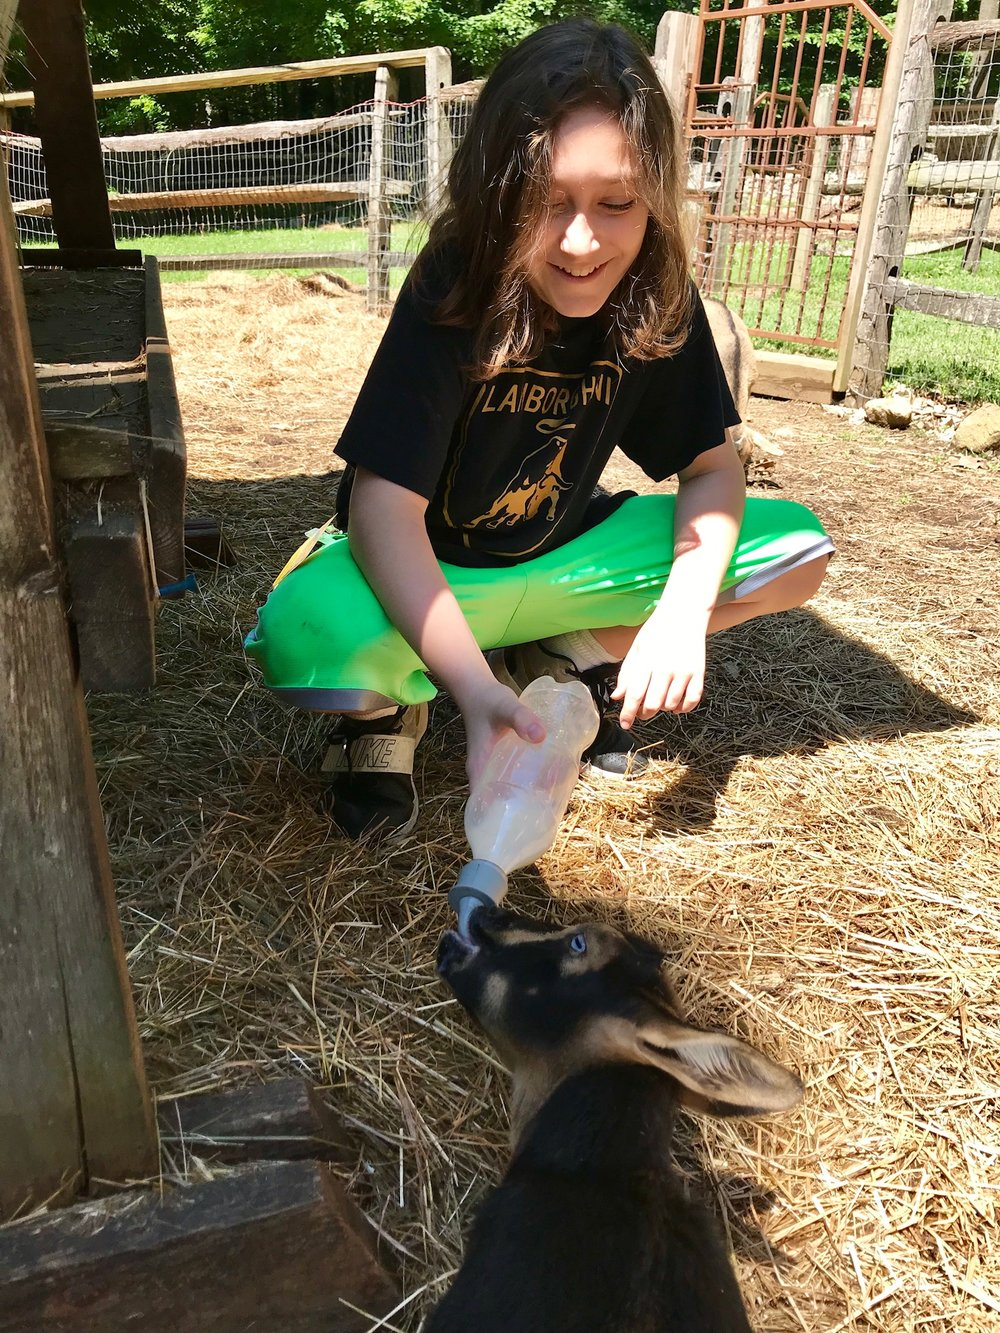 Bottle-fed the baby goats.